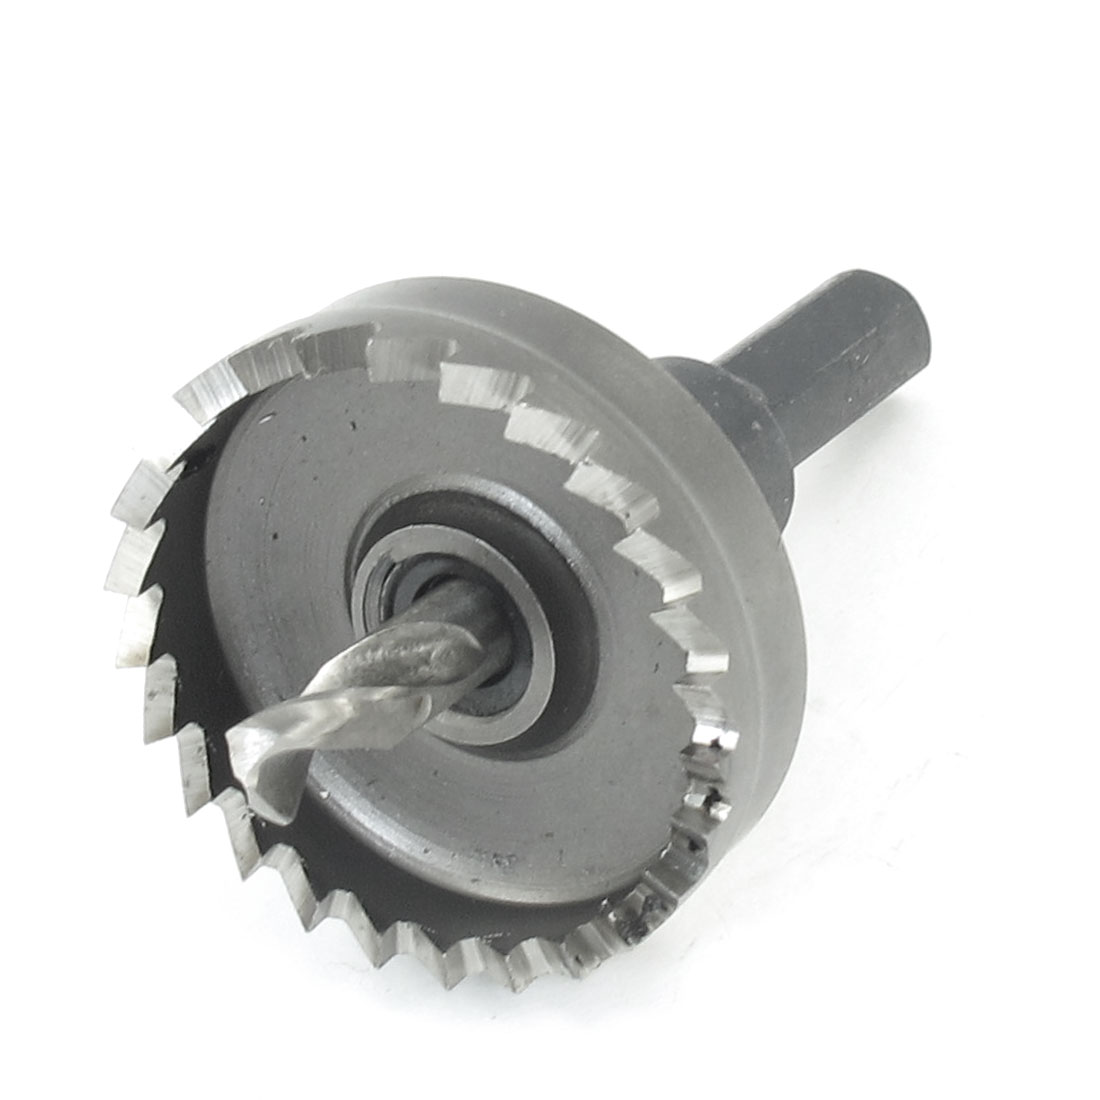 HSS 40mm Dia Iron Cutting Twist Drill Bit Hole Saw Cutter Tool